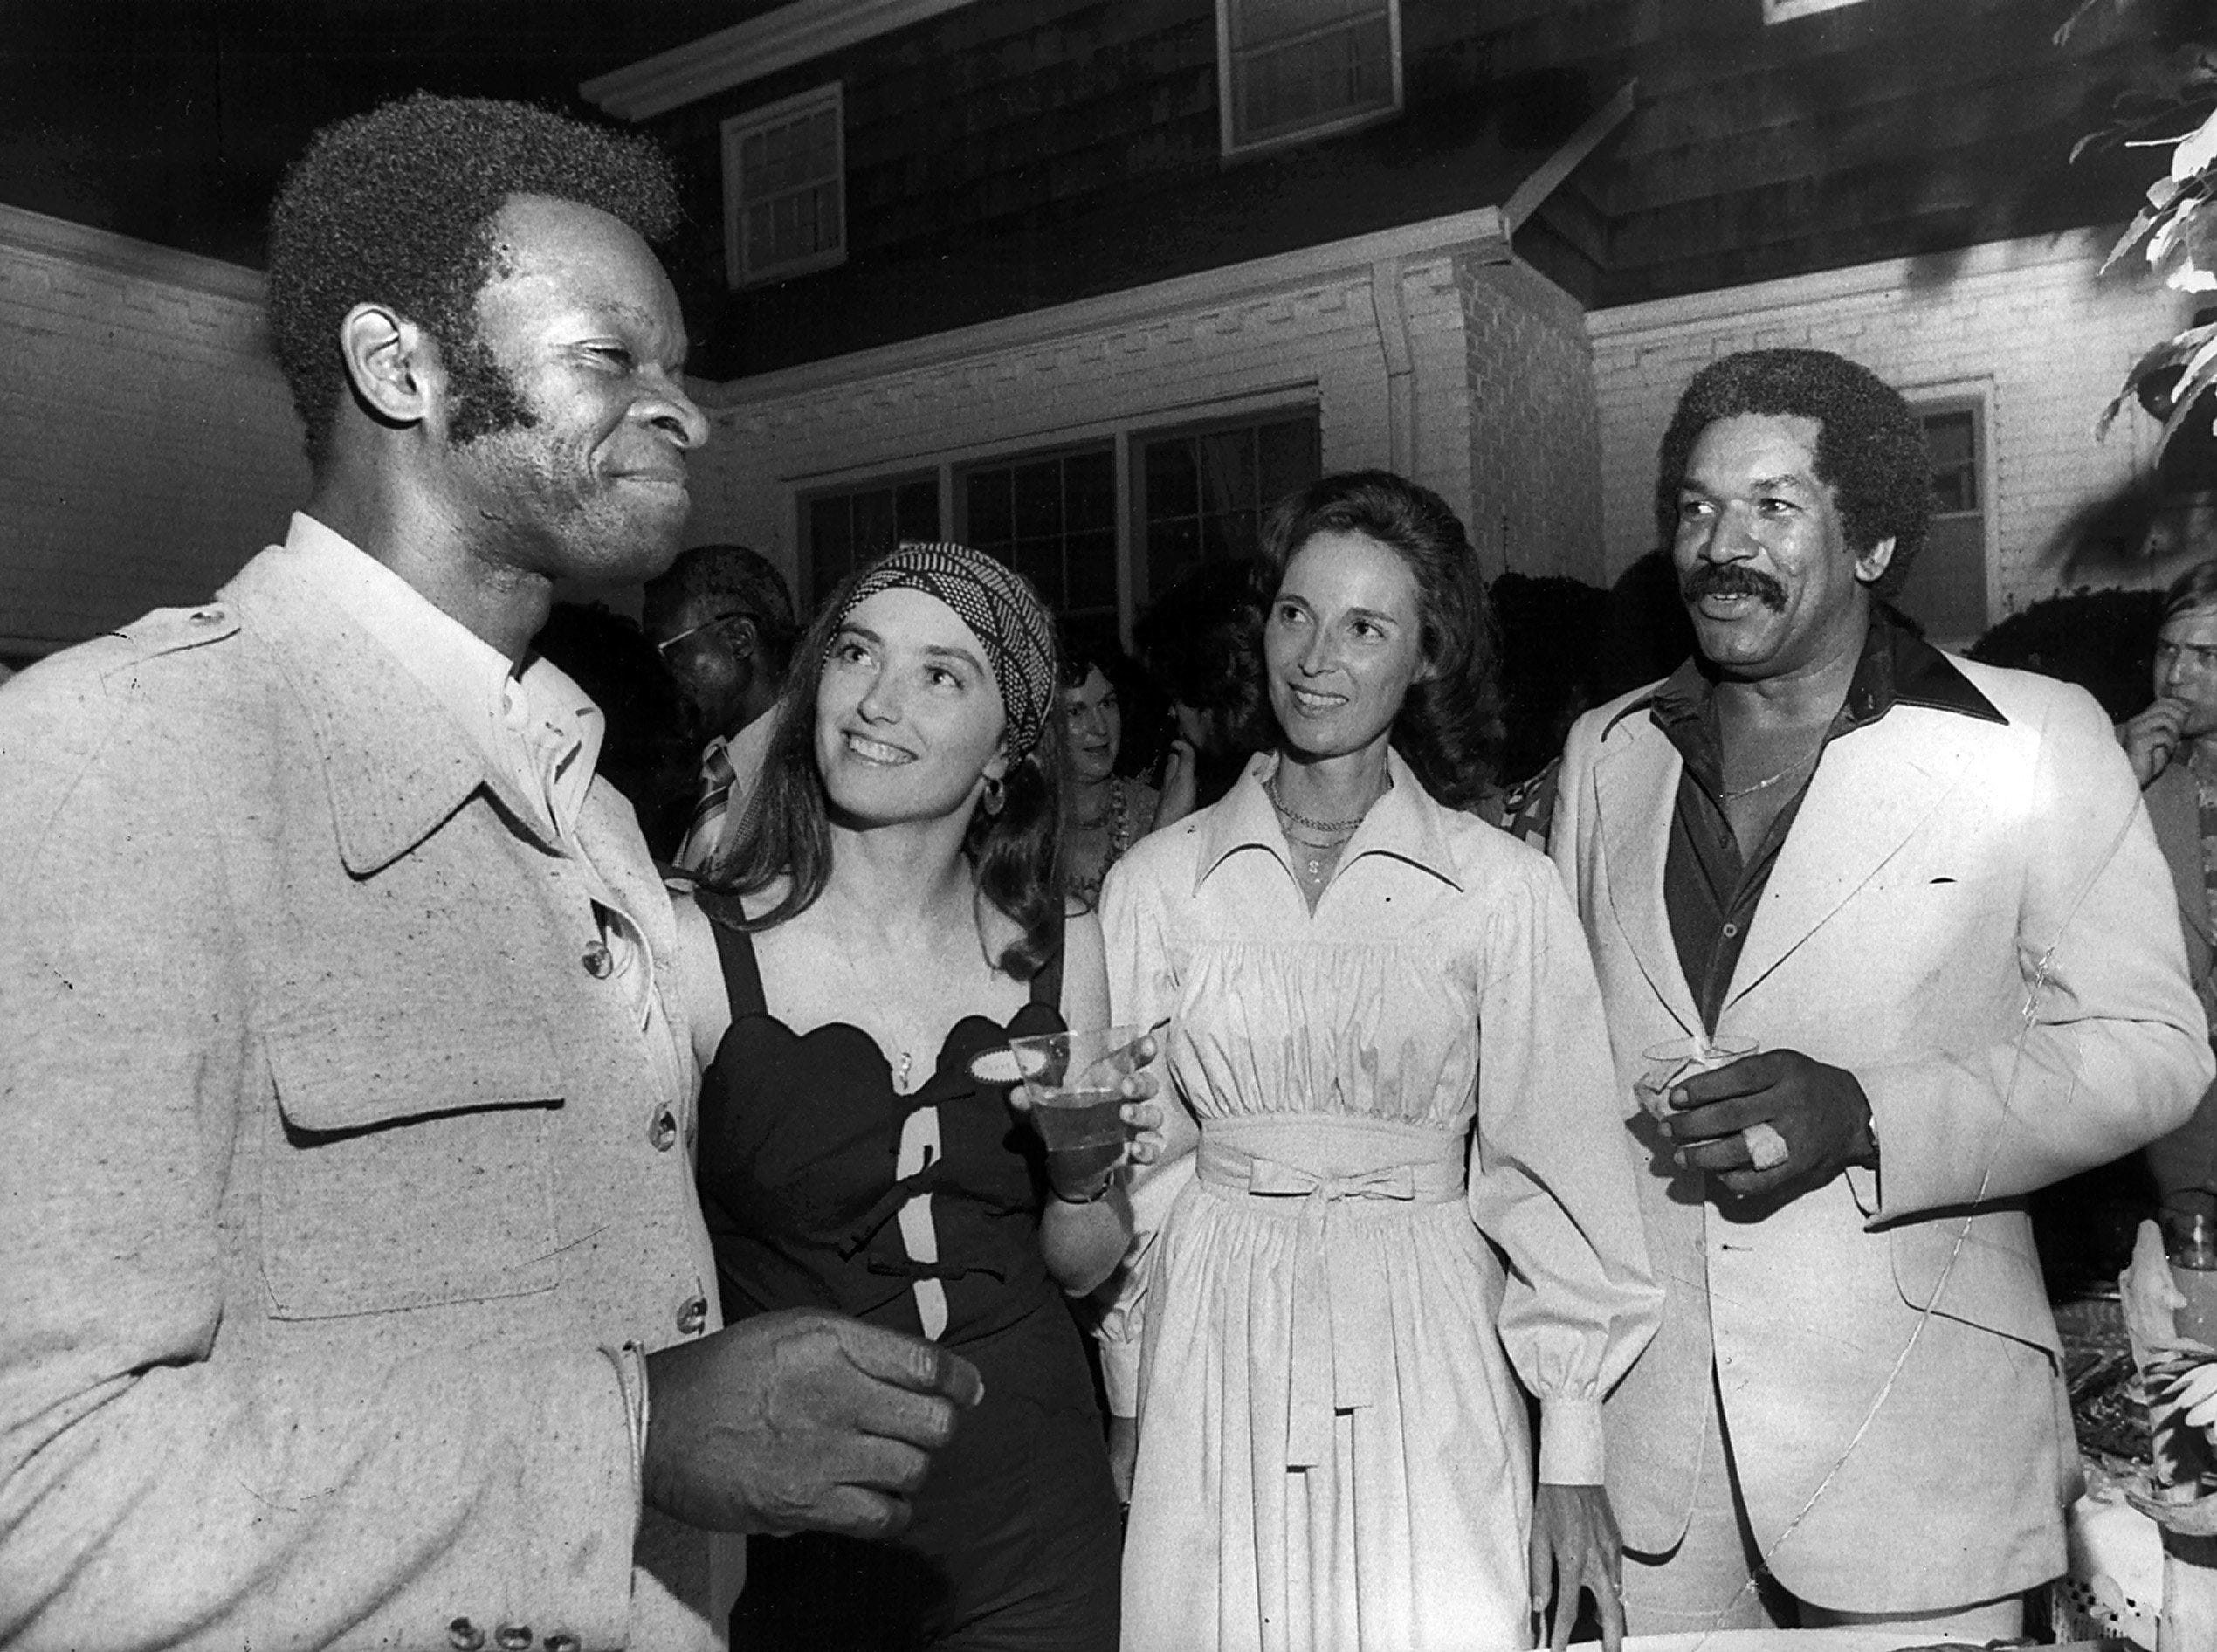 Brock Peters, (Left) co-founder and board chairman of The Dance Theatre of Harlem, was guest of honor on 30 June 1976 at a reception given by the board of directors of Ballet South.  Shown with Peters, around the pool at the home of Mr. and Mrs. L.R. Jalenak Jr. are Ballet south dancer Janet Luciano (Second Left), board member Mrs. Jerry Hanover and Larry Shaw, president of the Shaw Group of Memphis.  Peters is also an actor and recording artist.  He was scheduled to speak at the NAACP convention here the following day.